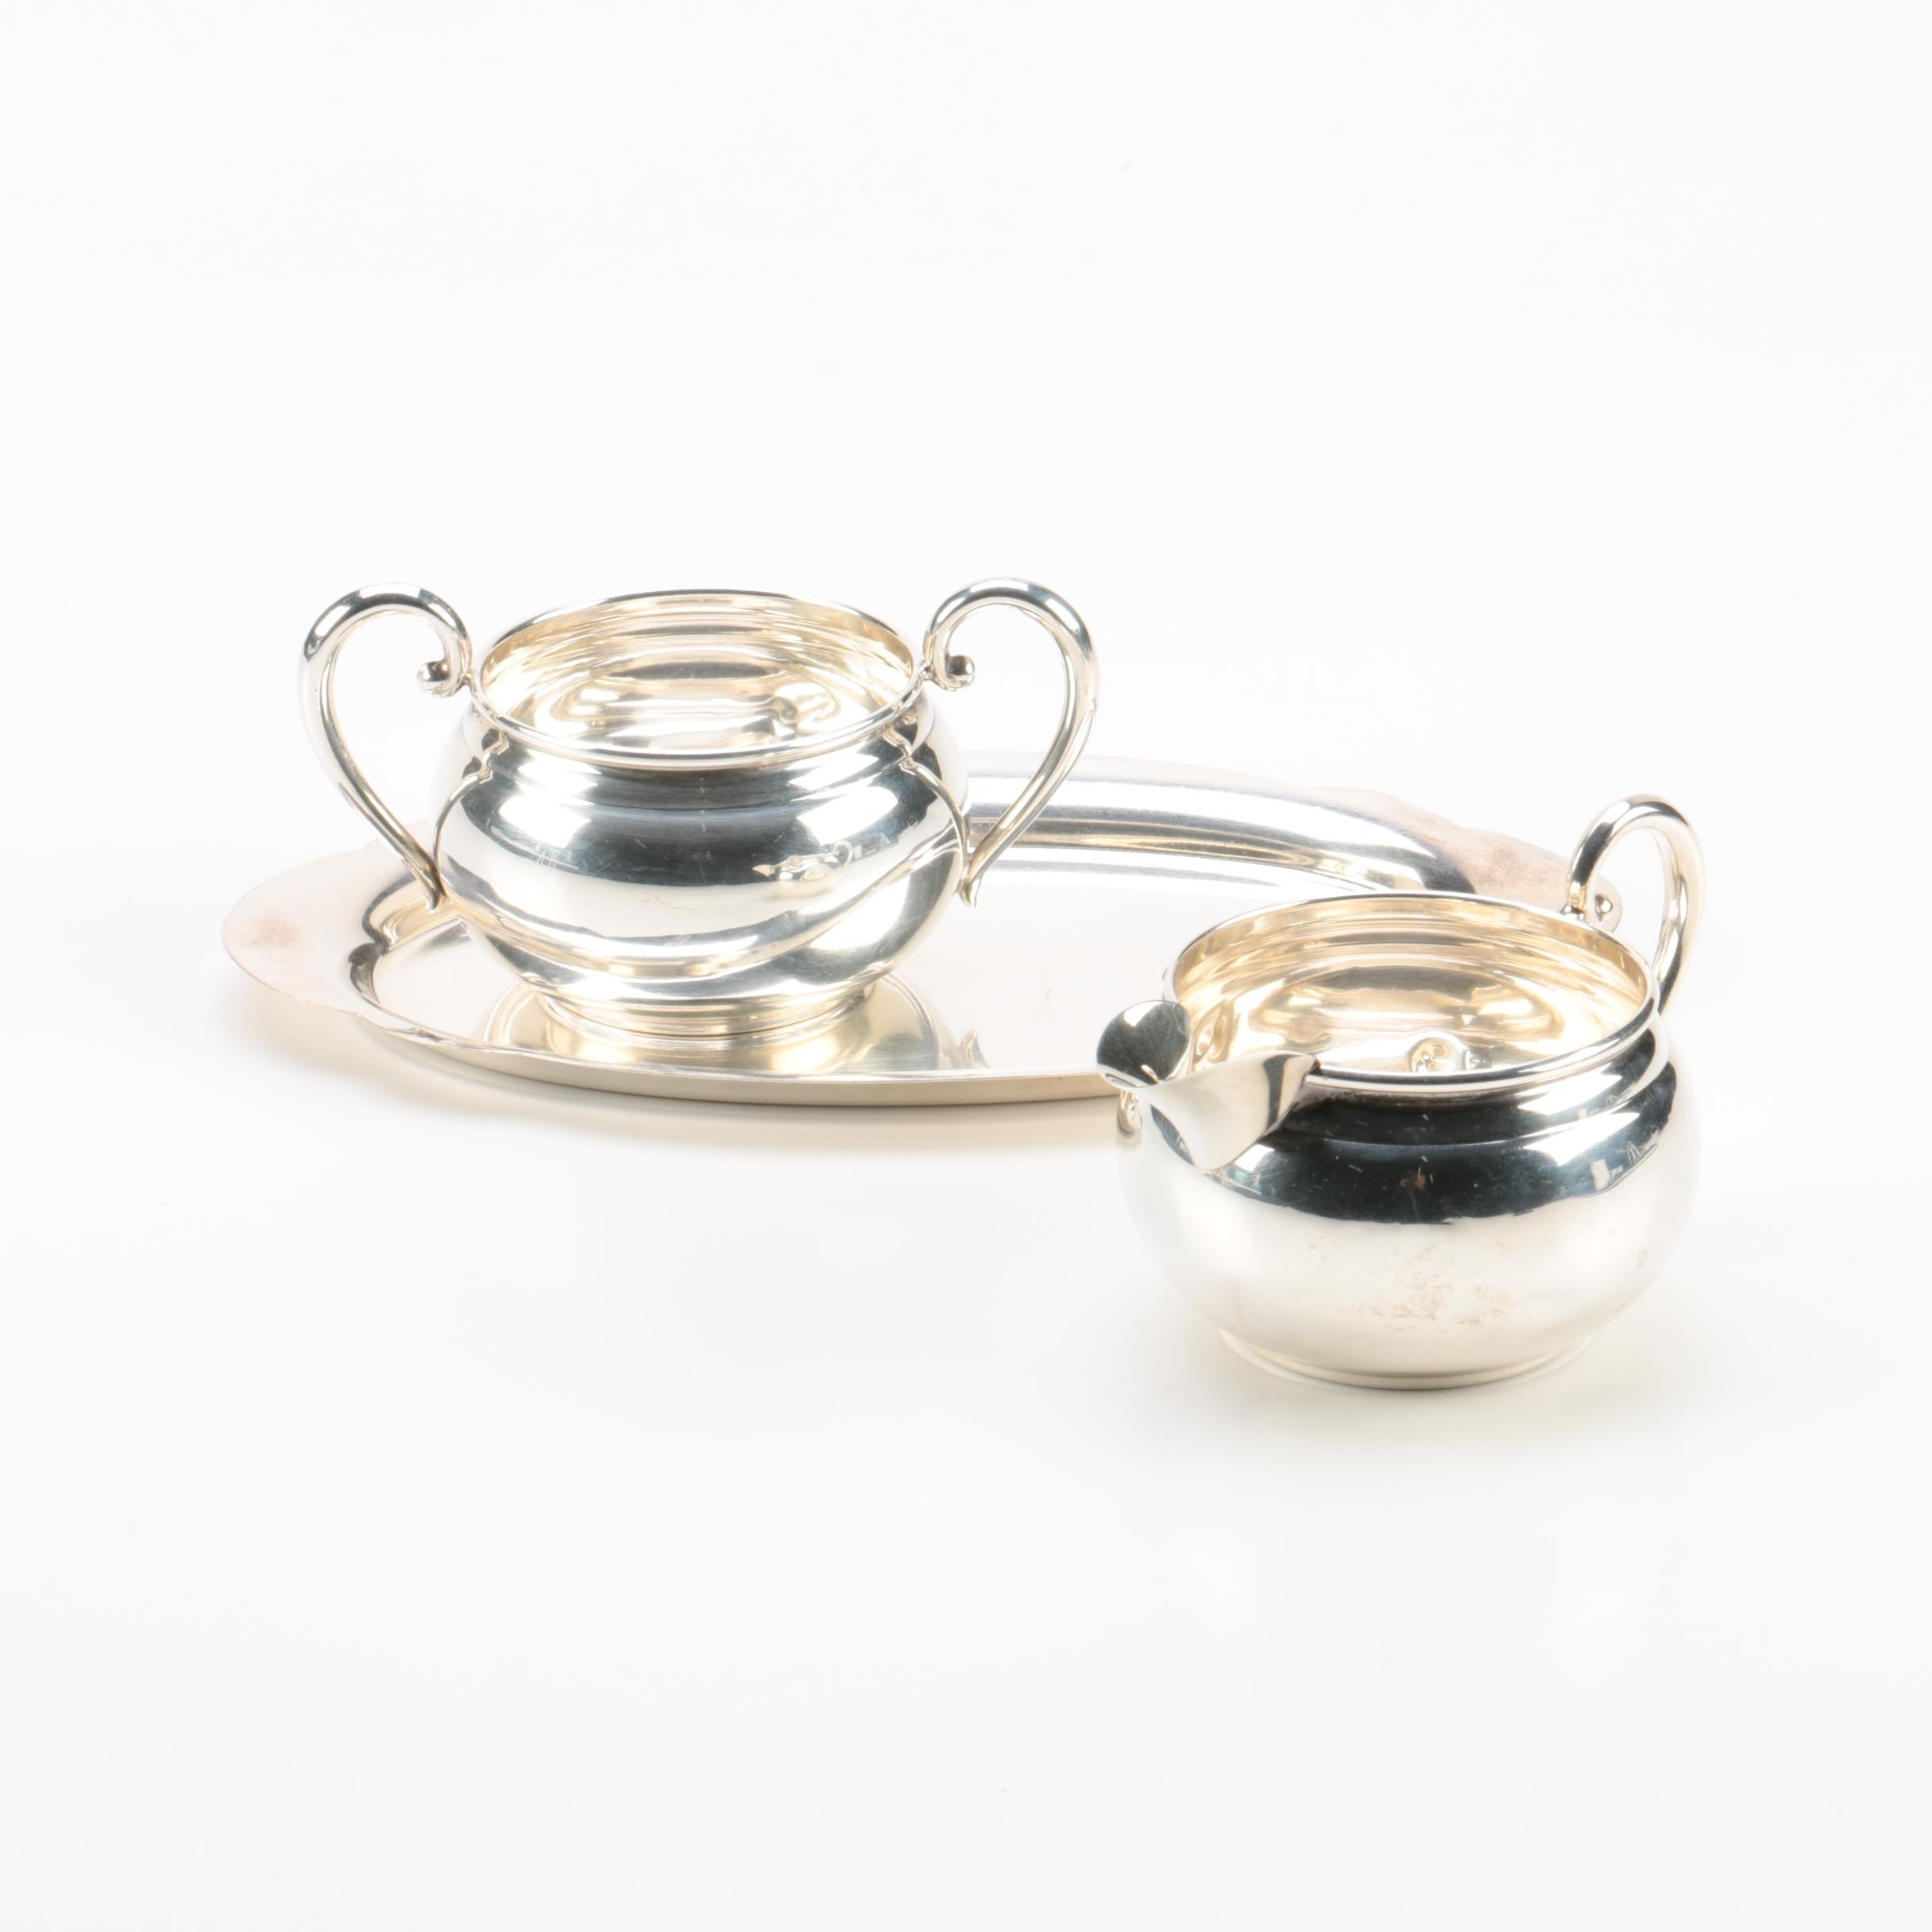 Revere Silversmiths Sterling Silver Creamer and Sugar with Tray